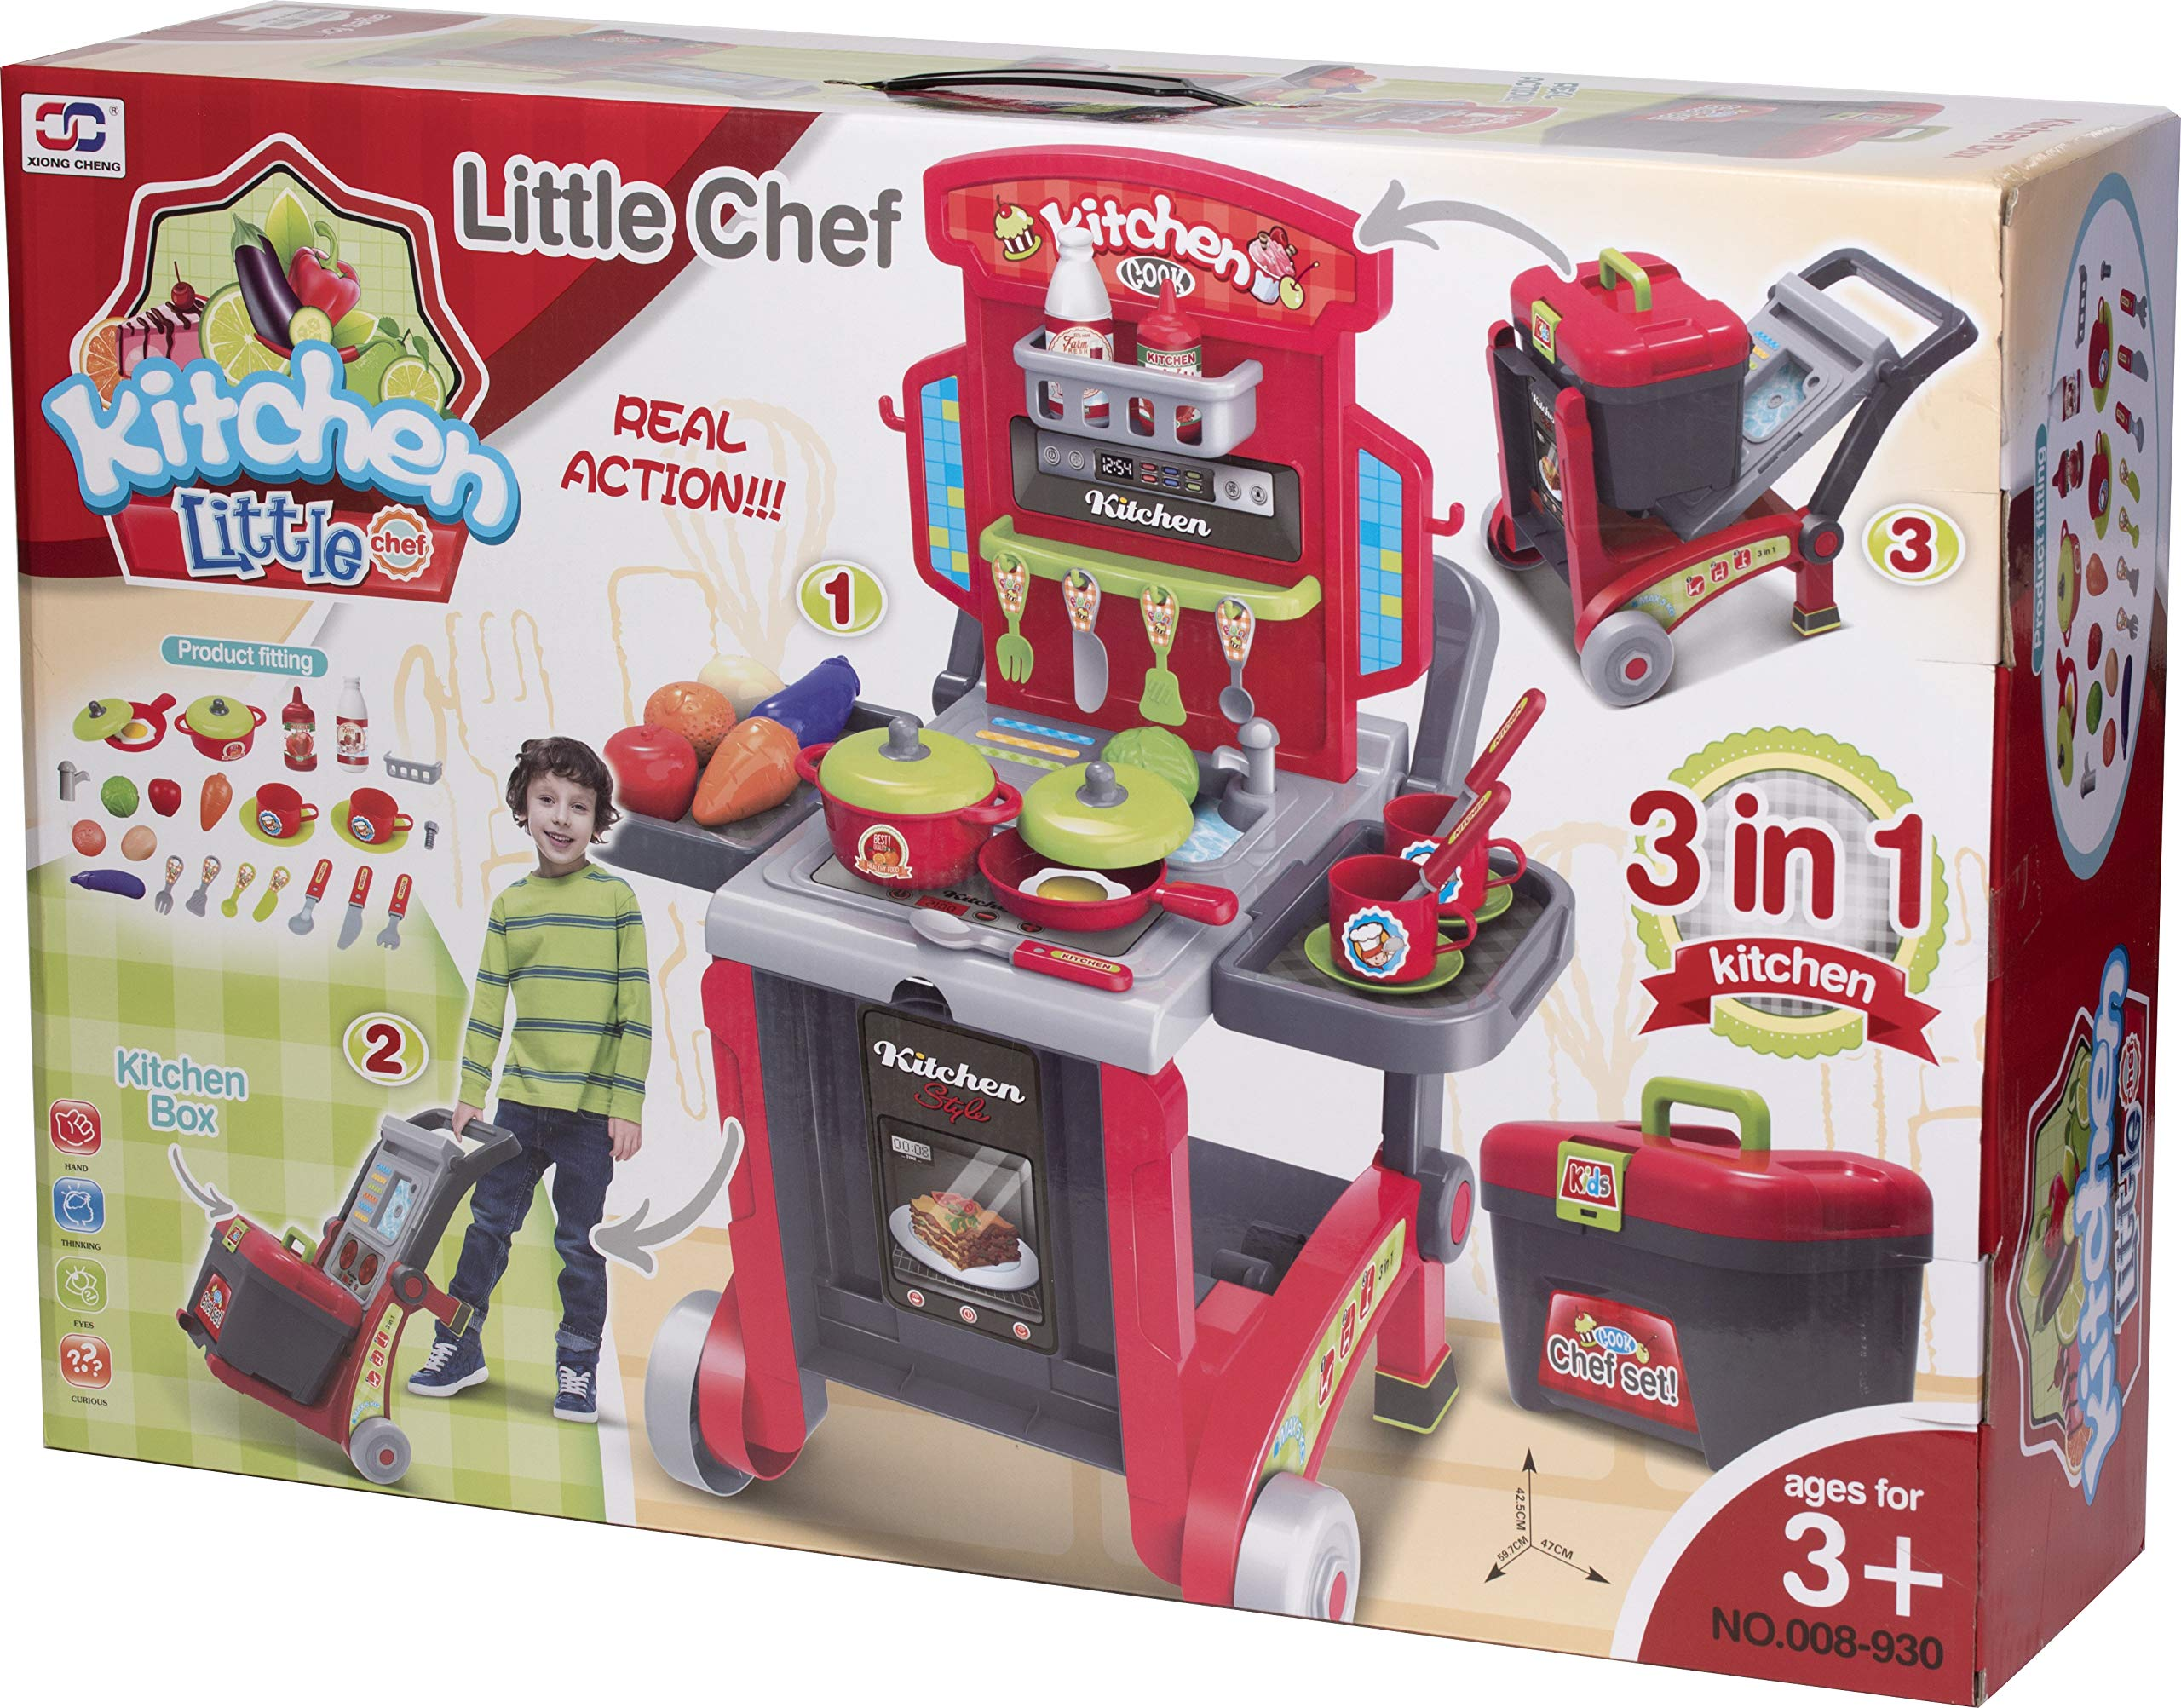 Kitchen Cook Grill Boys Playset Oven Stove, Vegetables, Pots & Pans, Cups, Utensils w/ Compact Carry Case by Kitchen Cook (Image #7)